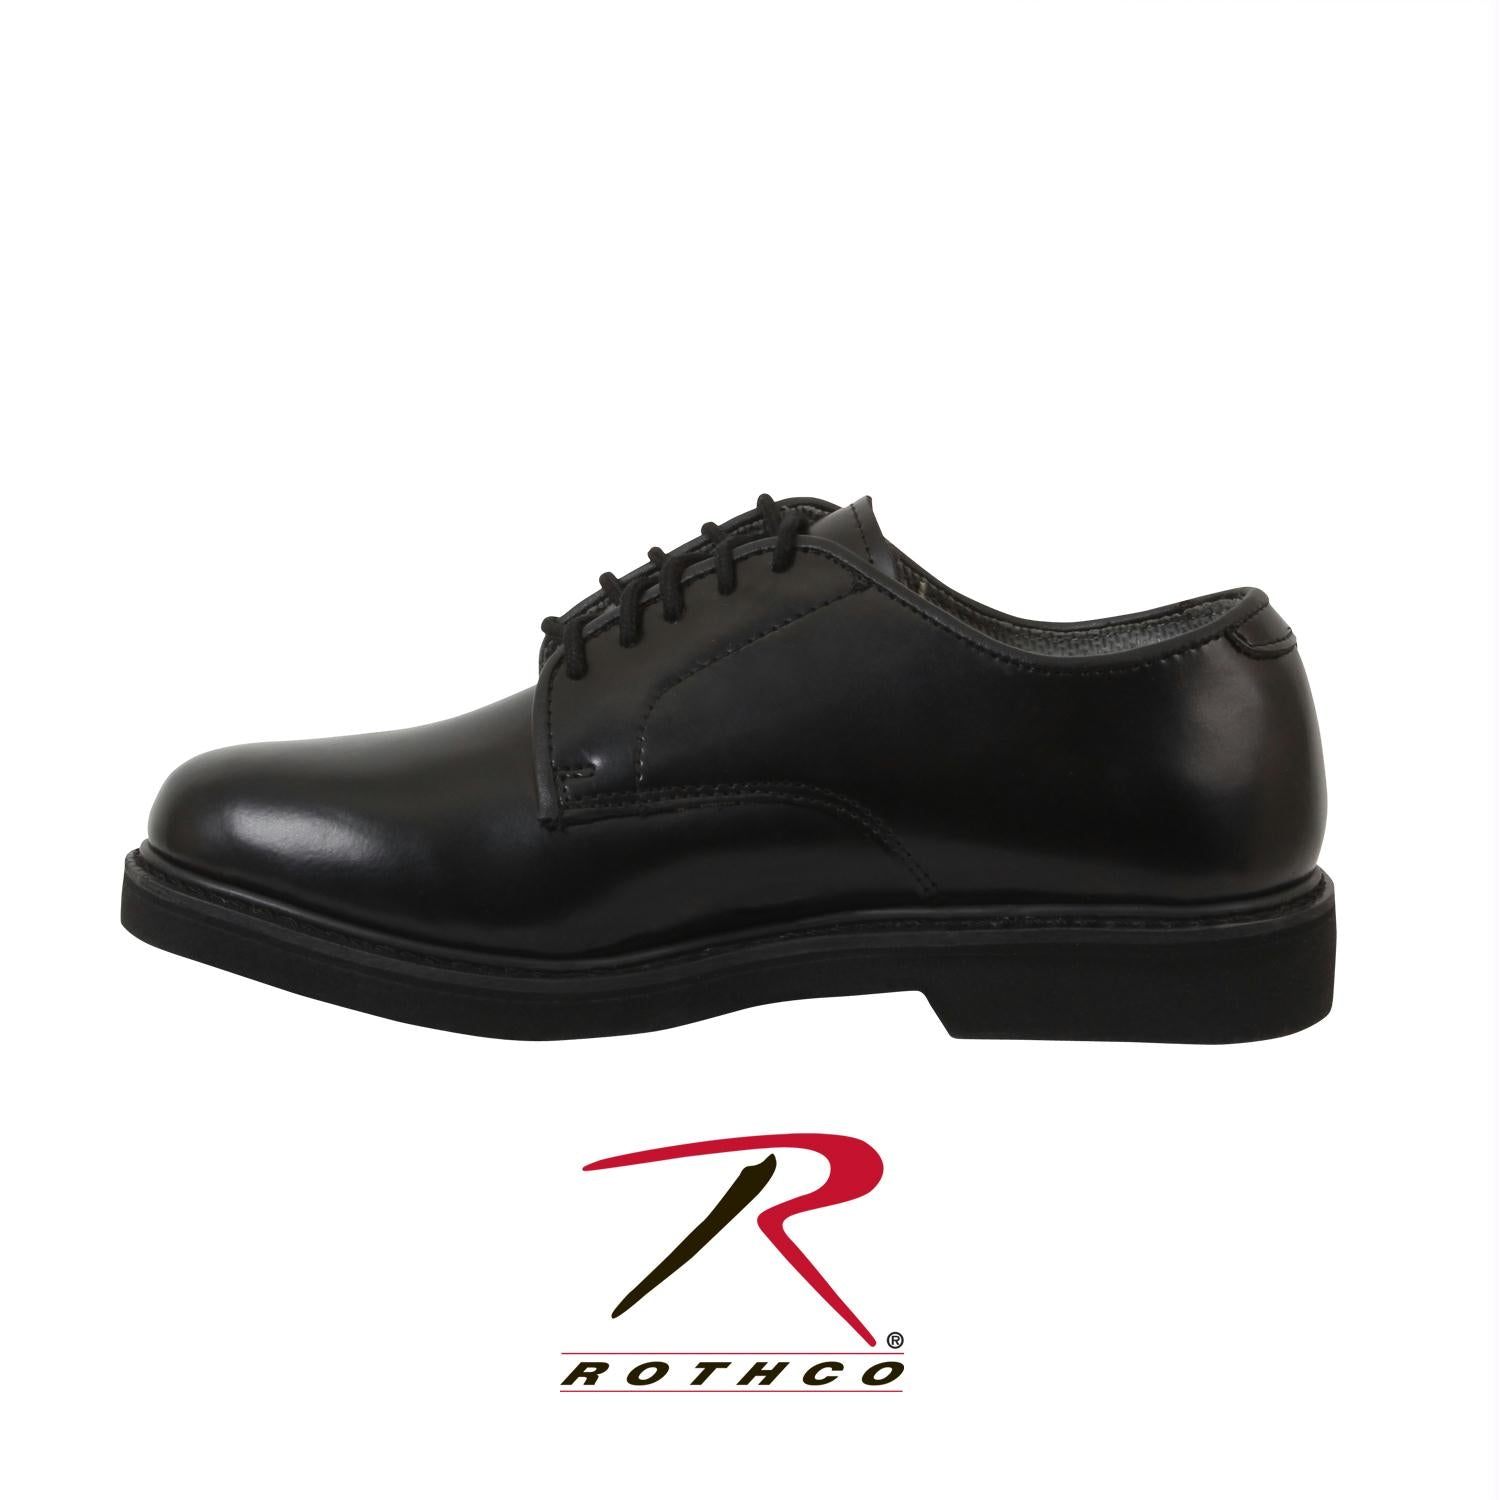 Rothco Military Uniform Oxford Leather Shoes - 10.5 / Regular